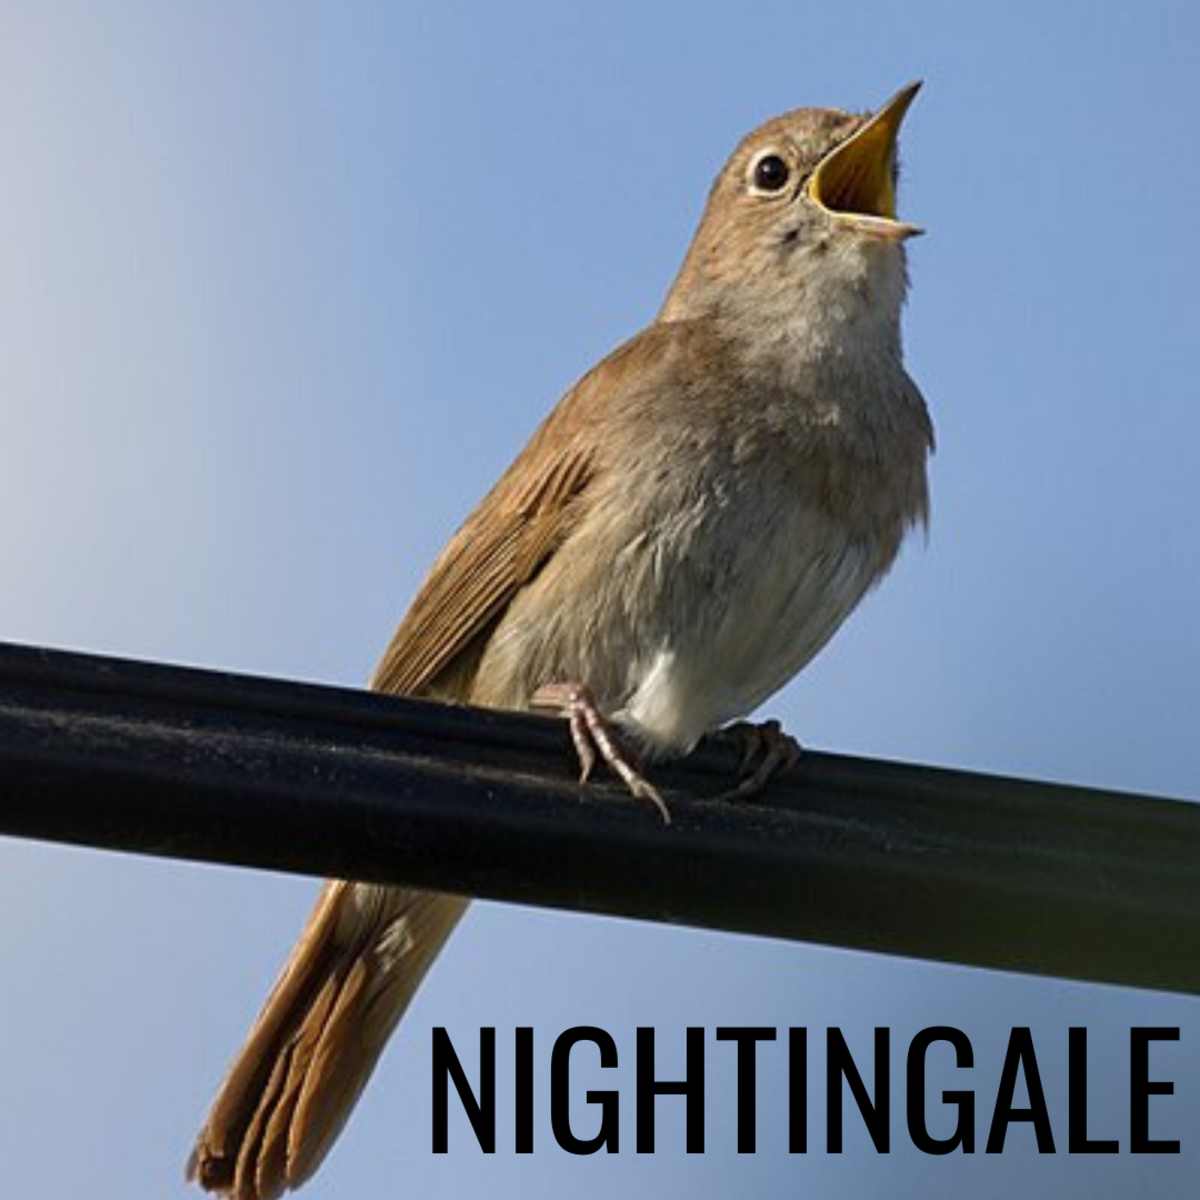 The nightingale is associated with love, longing, and creativity.